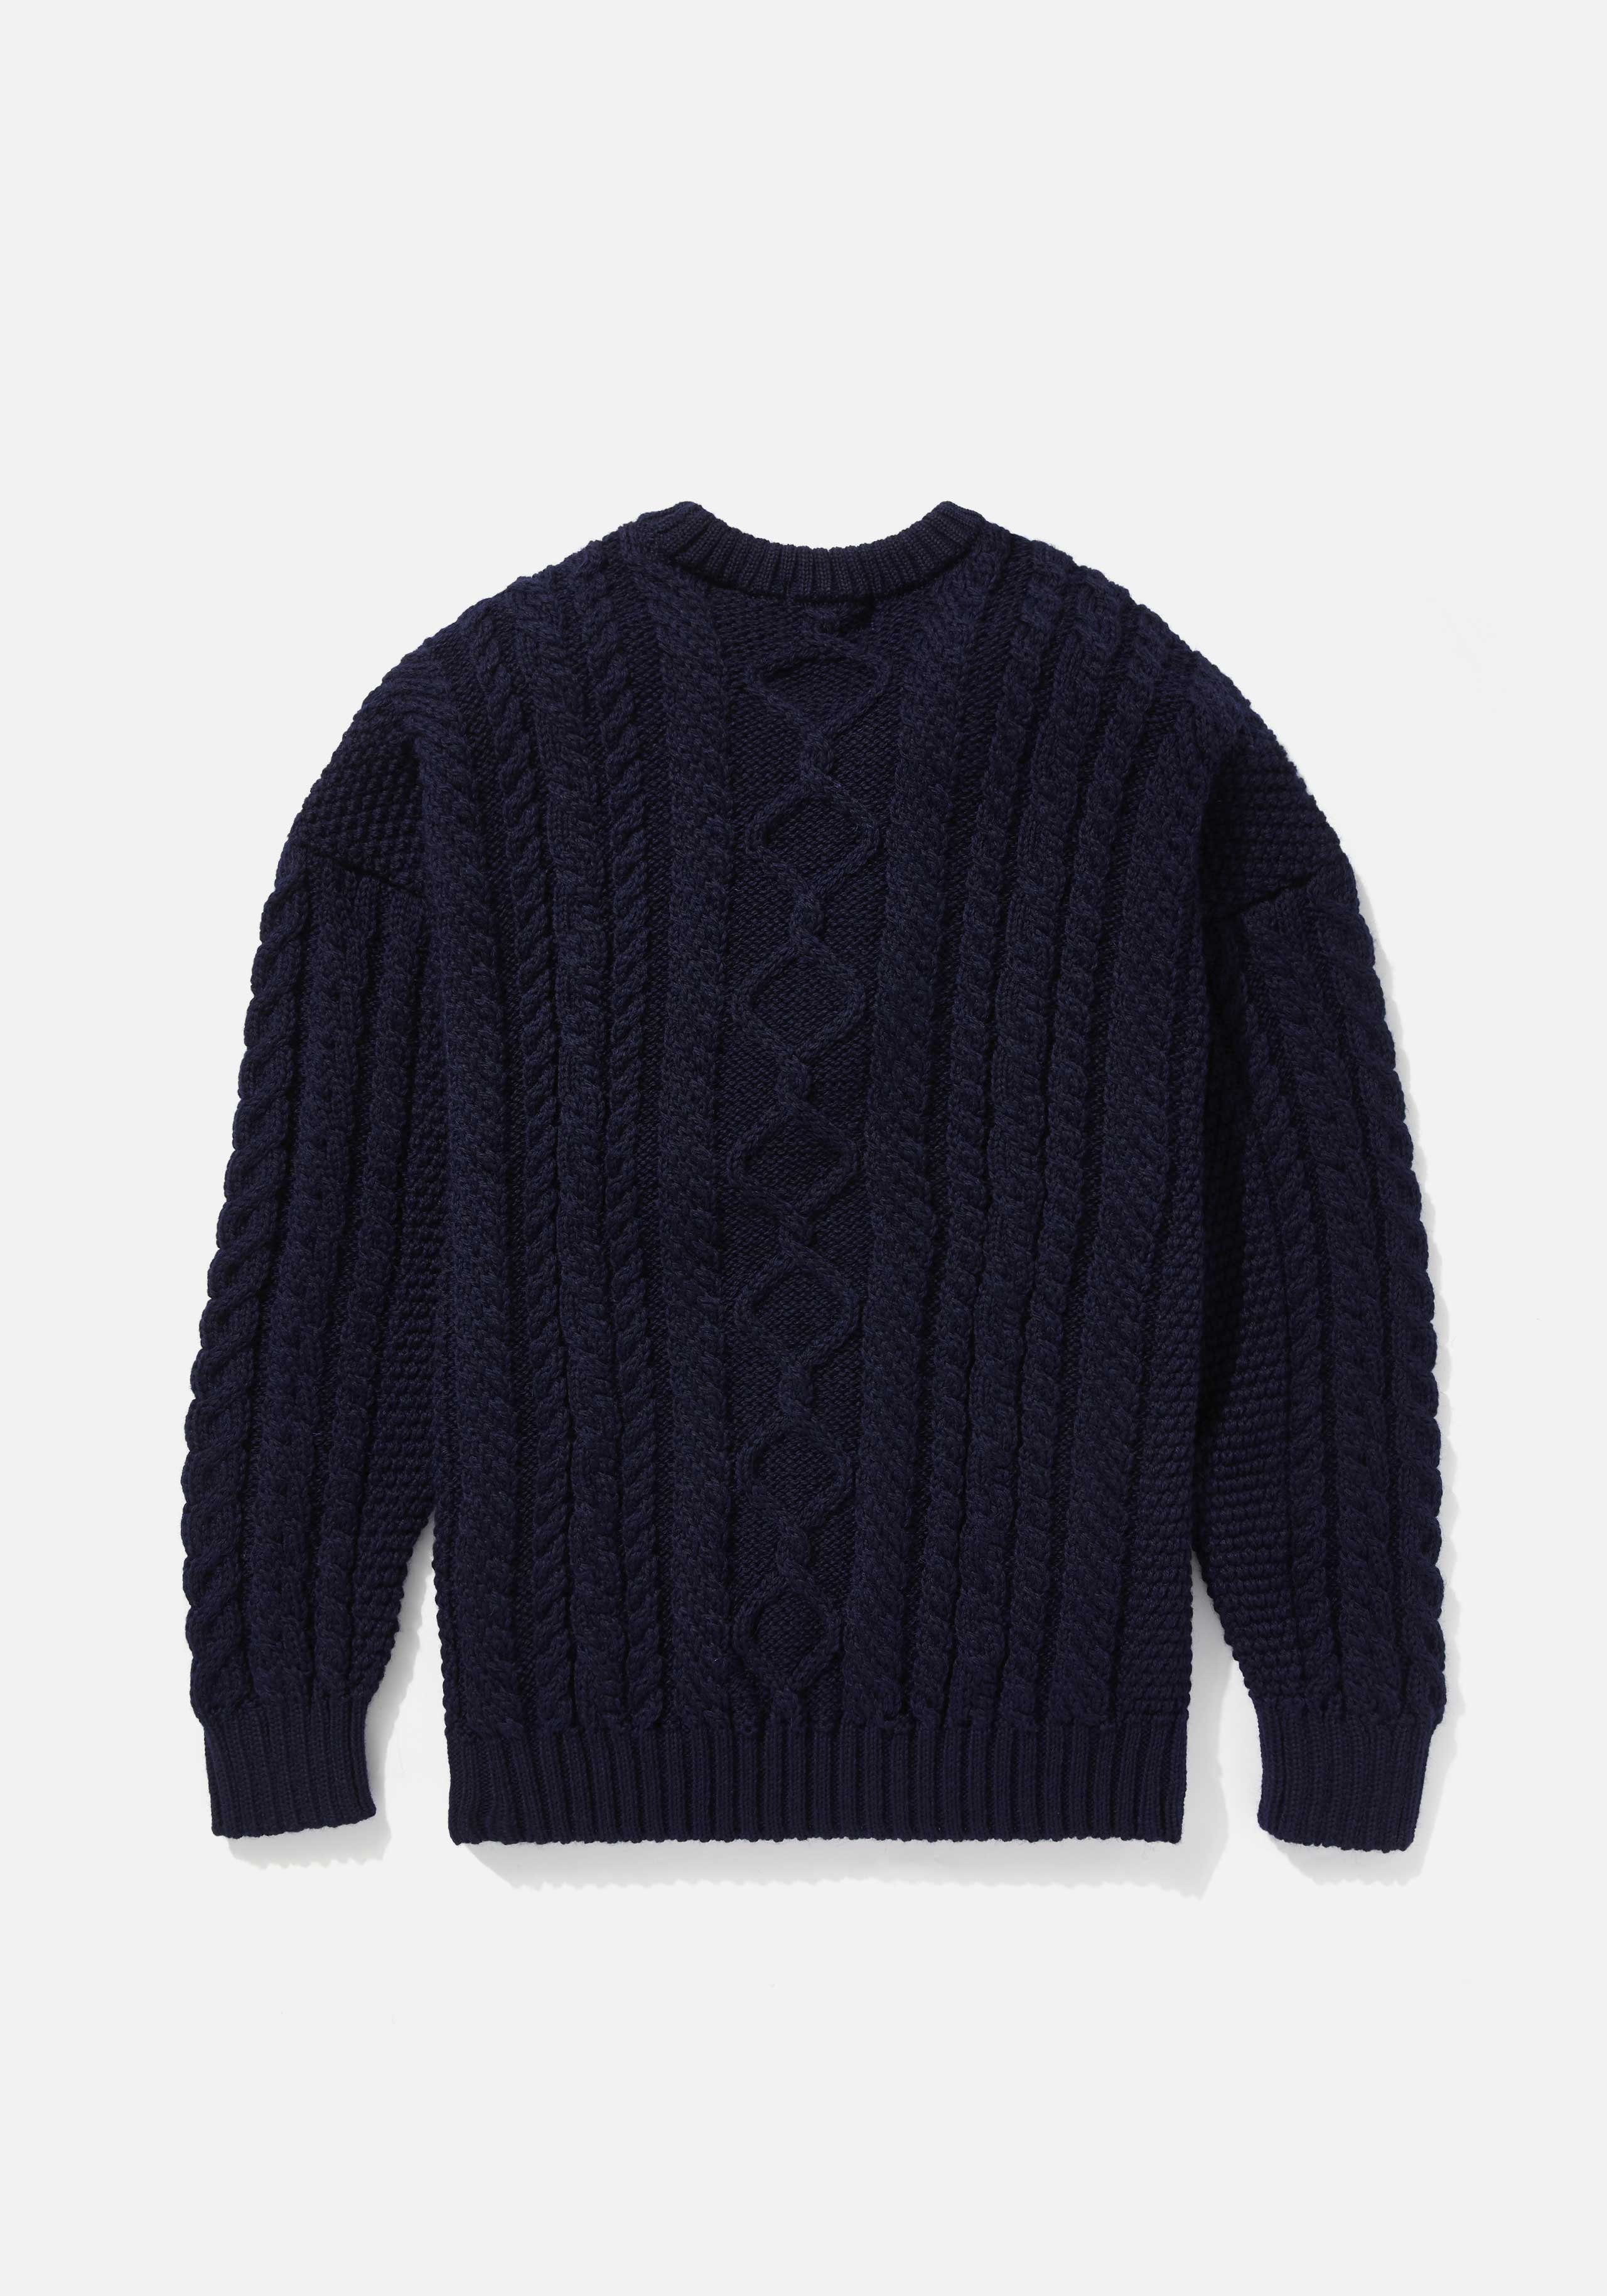 mki aran knit sweater 2